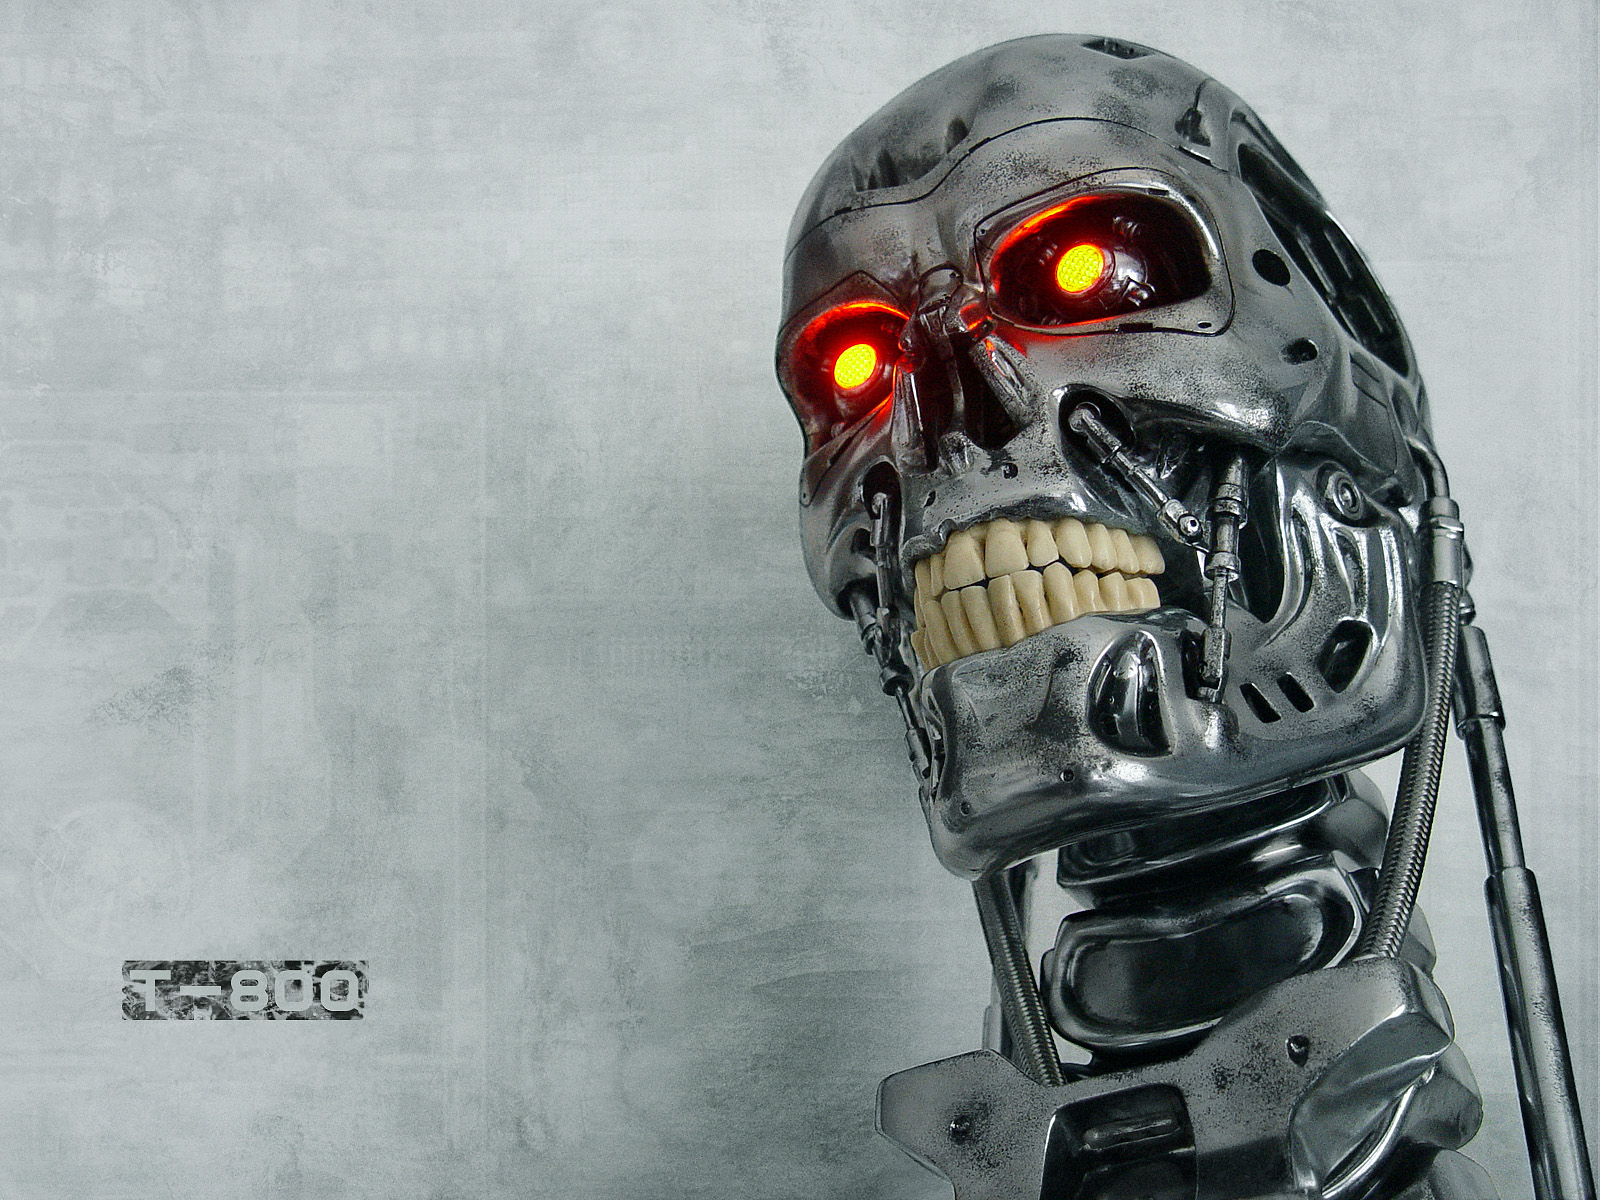 Awesome HD Robot Wallpapers Backgrounds For Download 1600x1200